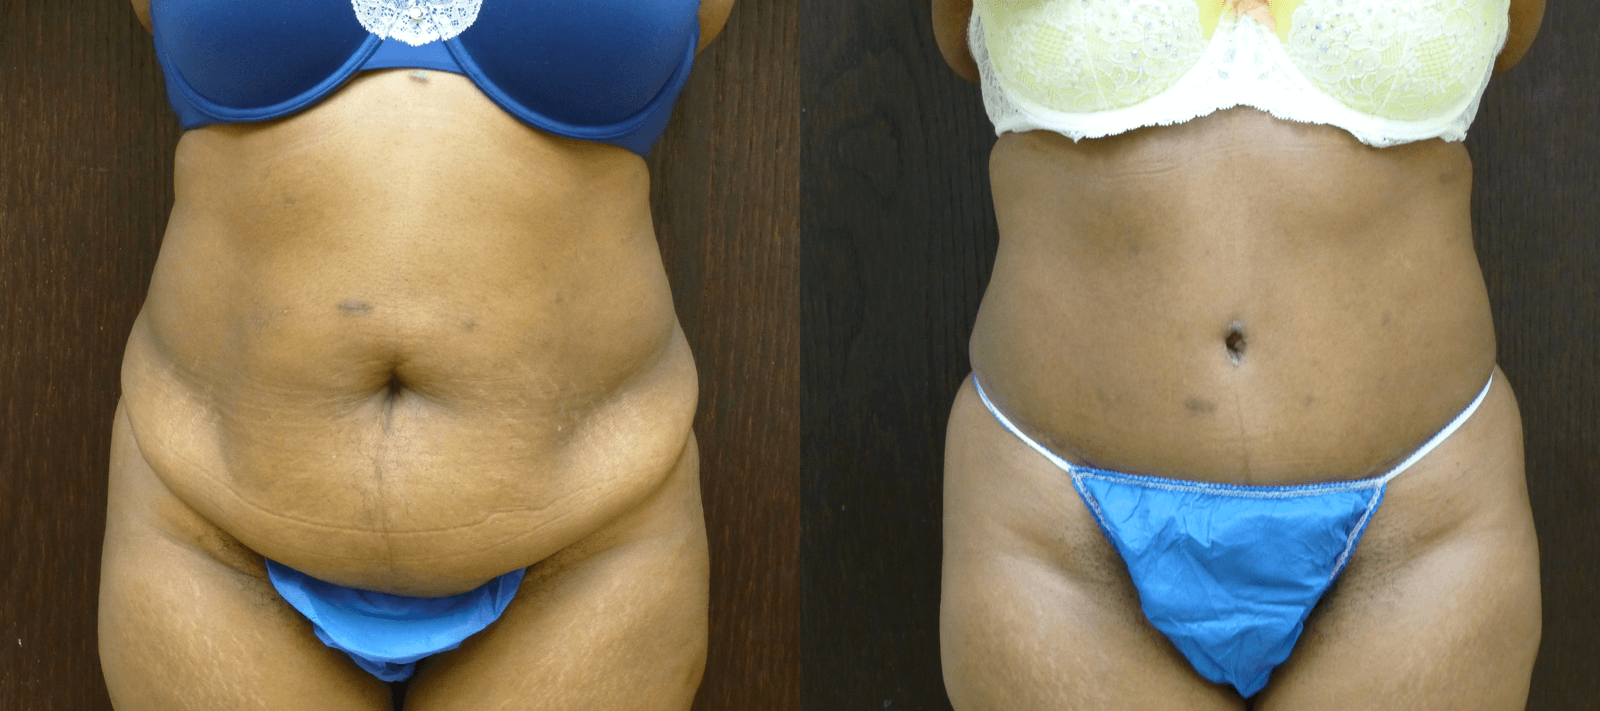 57 year old Abdominoplasty with liposuction of the sides Before and 2 months post-operative. Dr. Finger specializes in the Tummy Tuck procedure without drains.